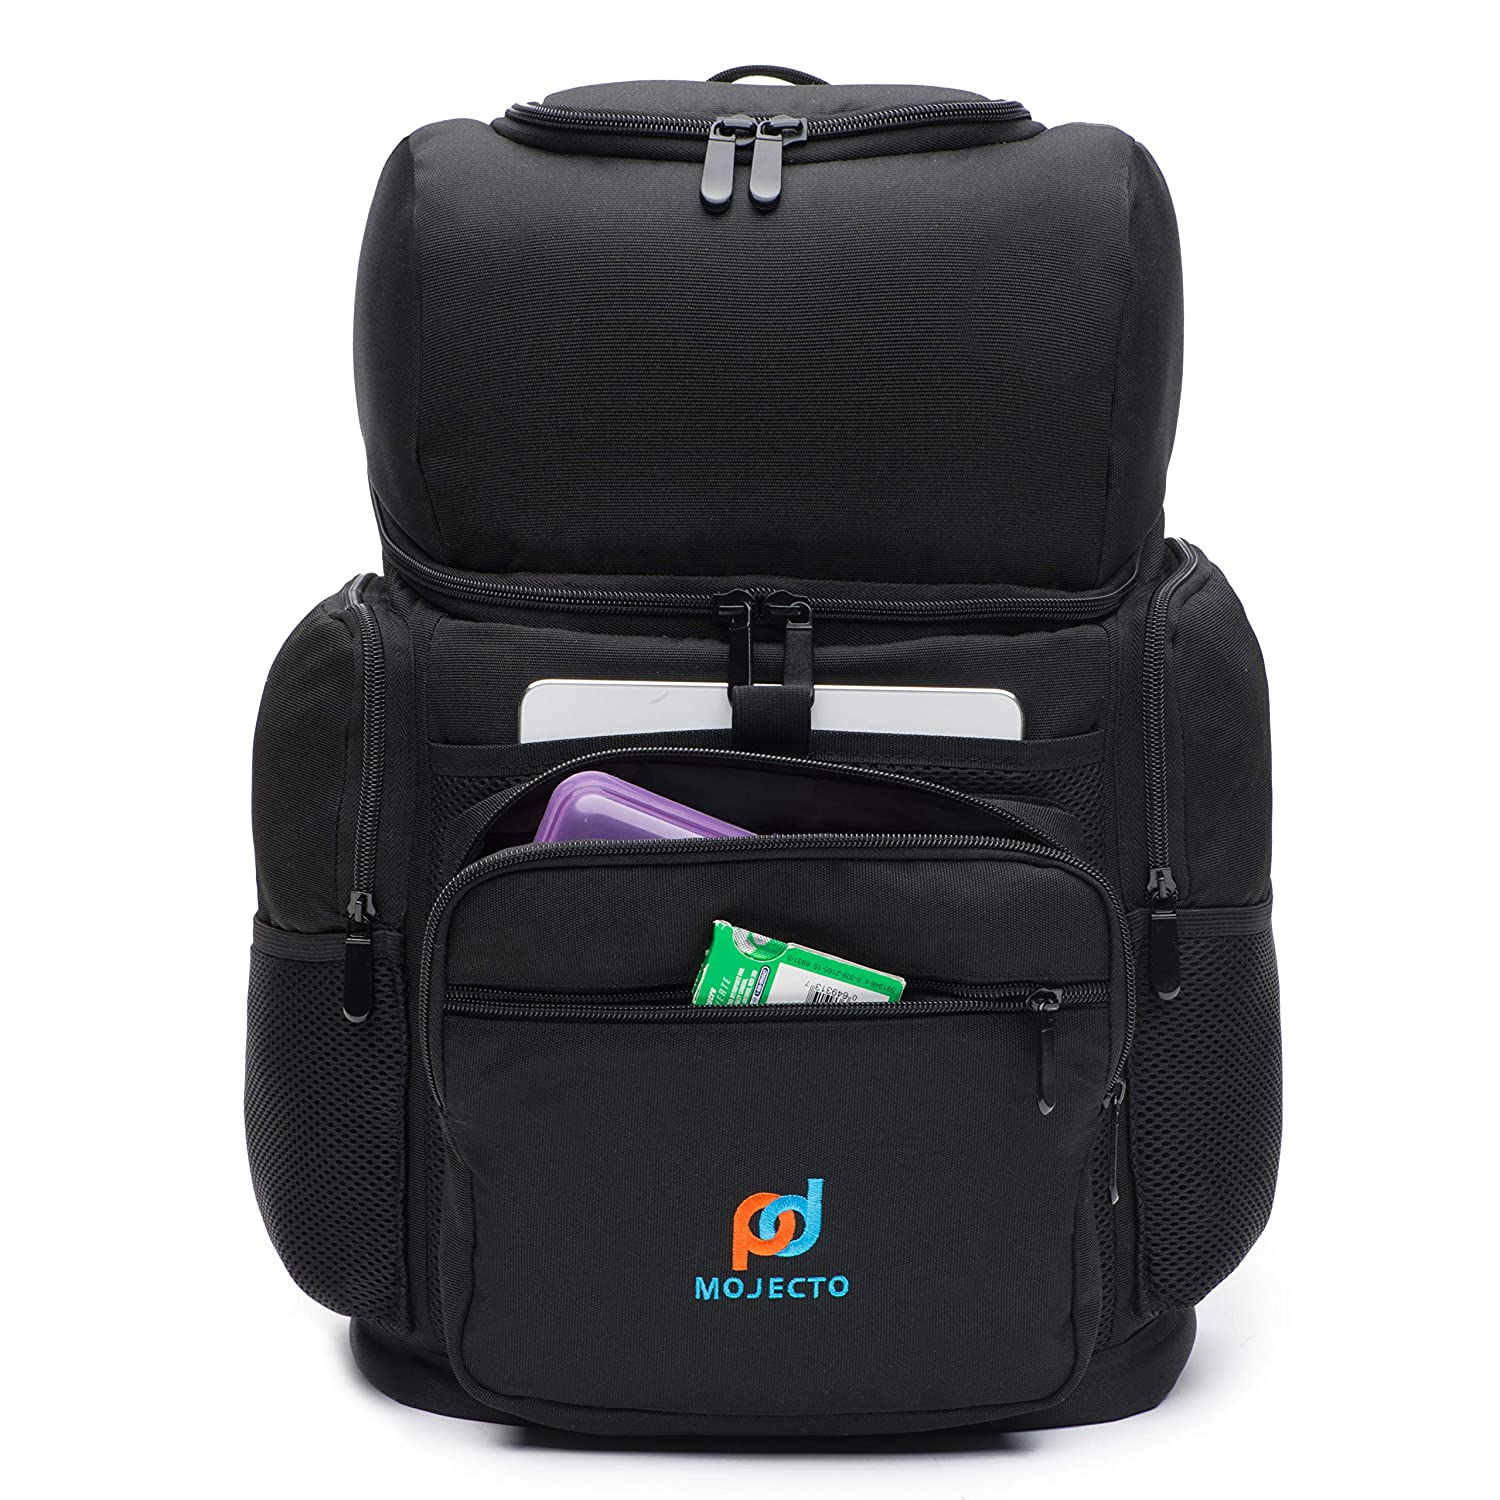 MOJECTO Backpack Cooler – Two Insulated Compartment. Heavy Duty 1000D Fabric, High Density Foam Insulation, Heat Sealed Thick Peva Liner, Multiple Large Pockets, Strong Zippers, Padded Straps.